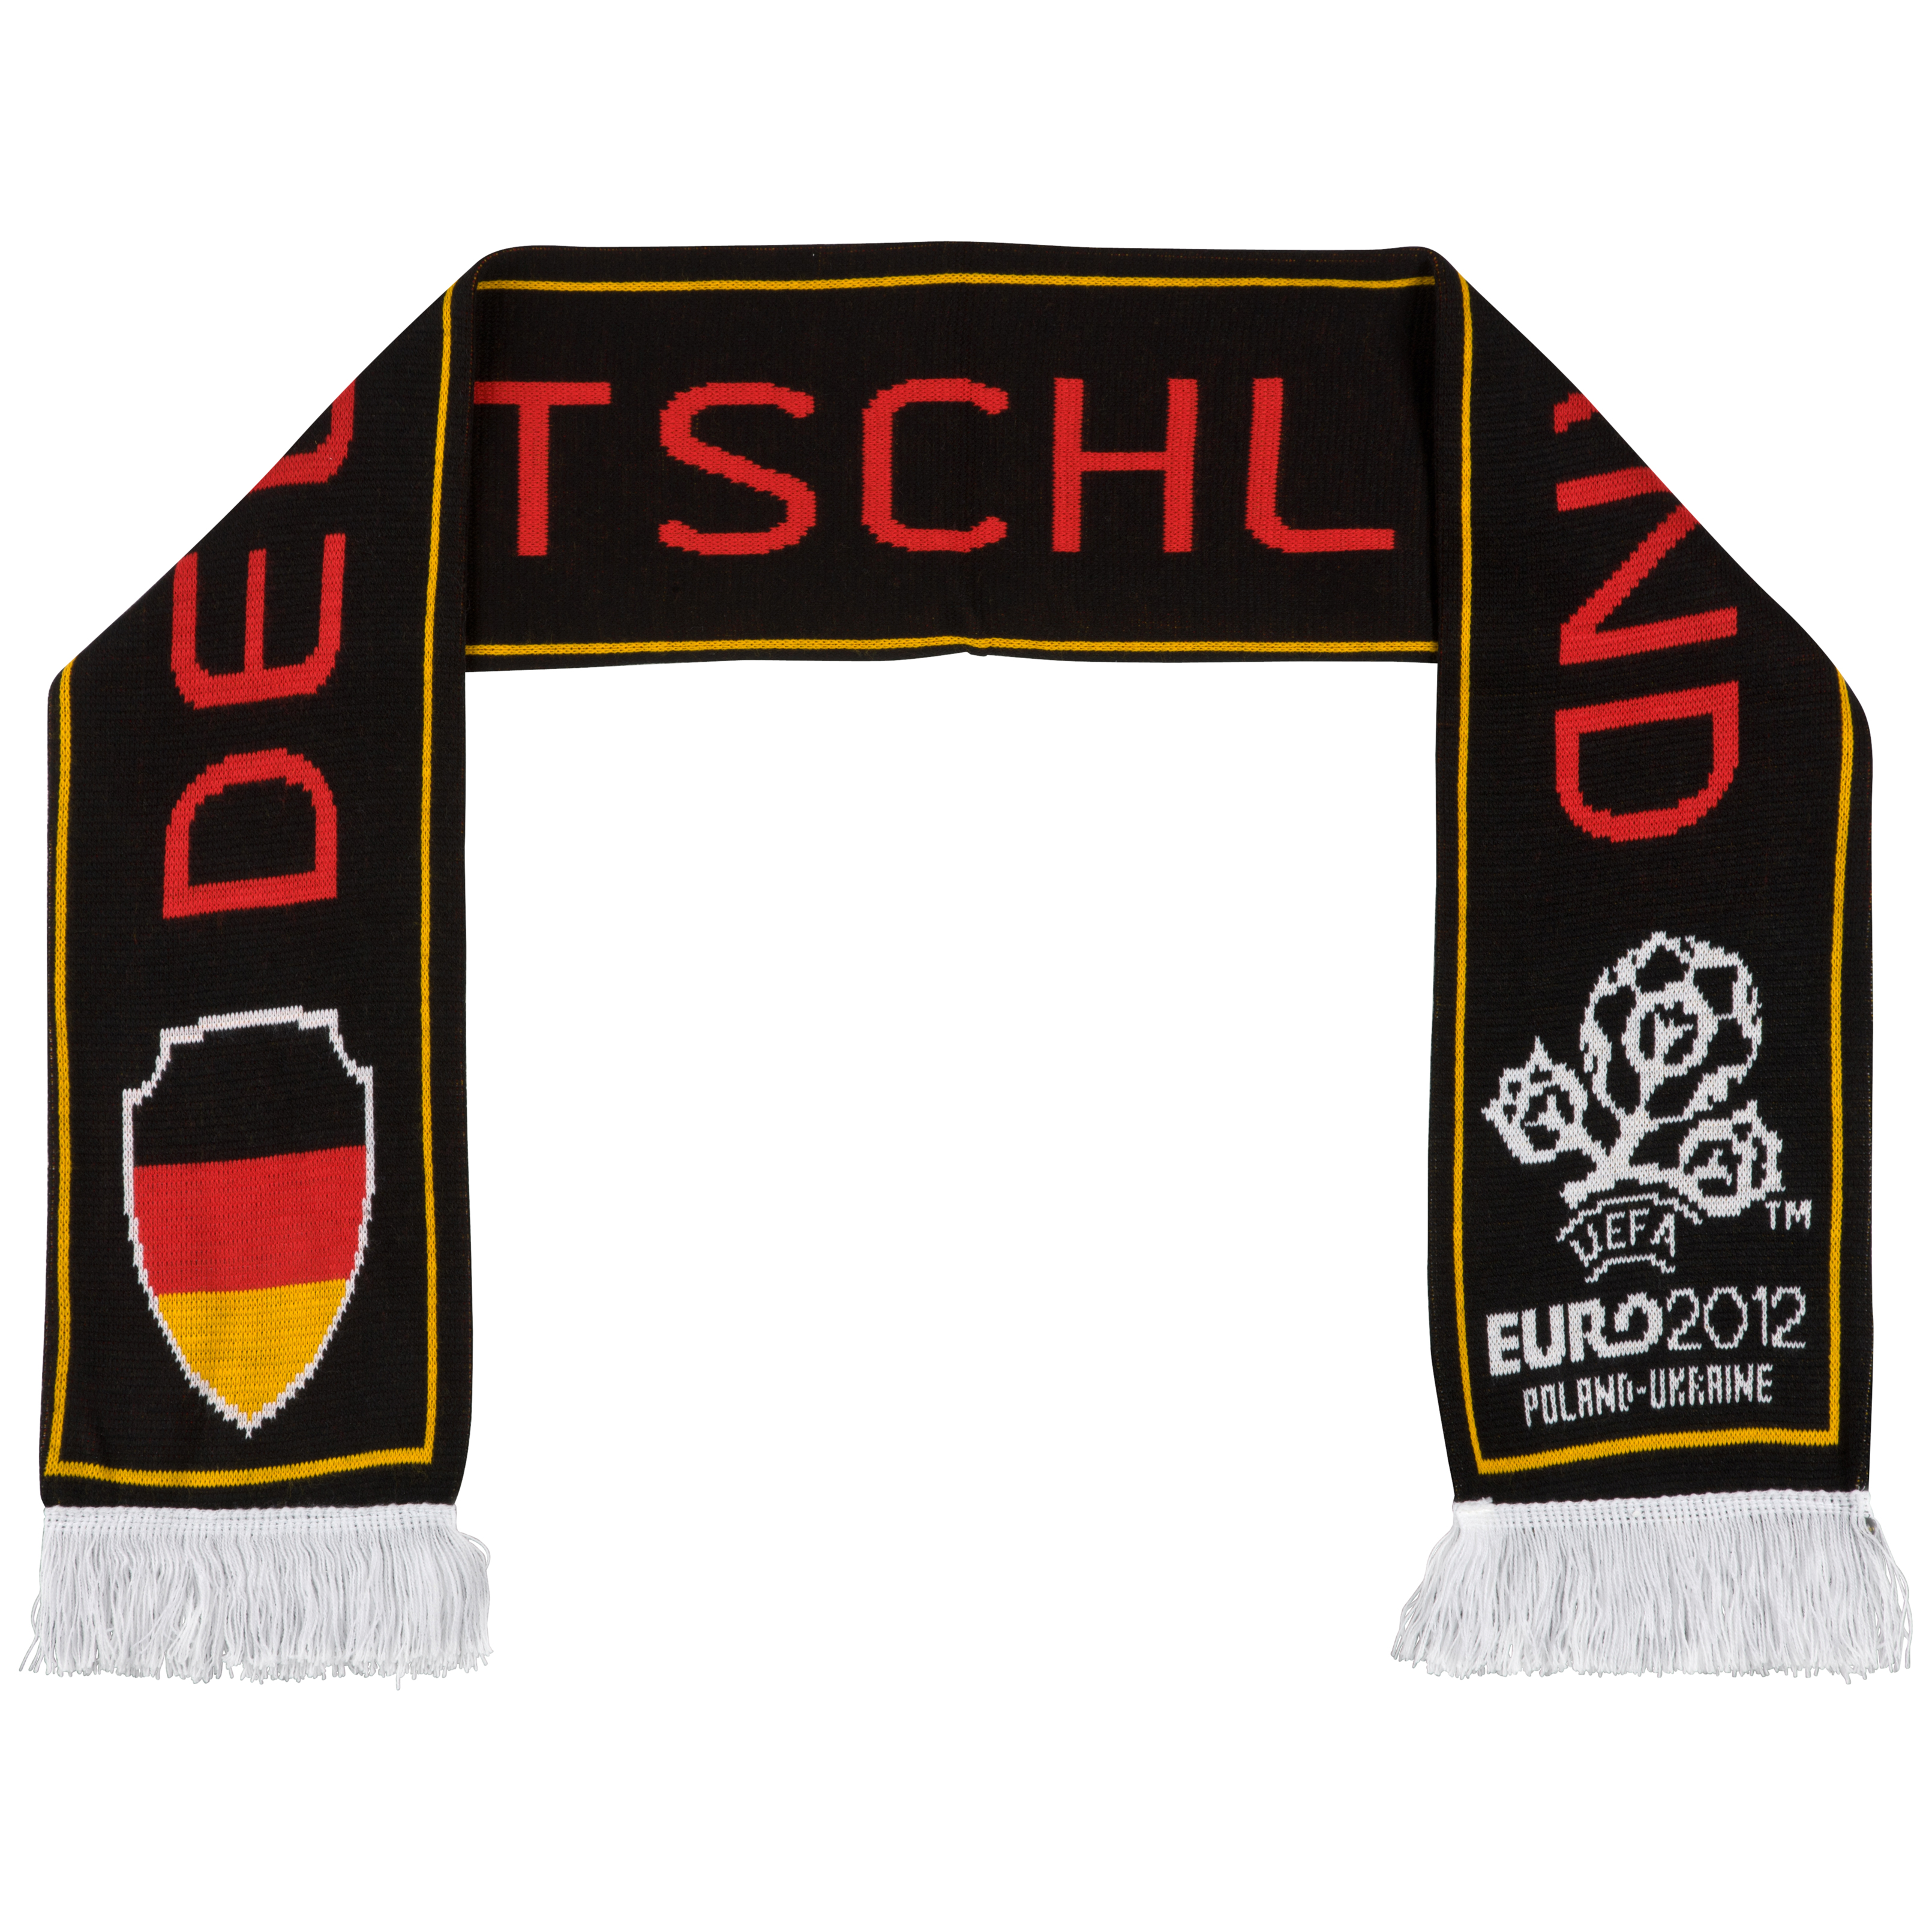 Euro 2012 Germany Jacquard Scarf - Black/White/Gold/Red